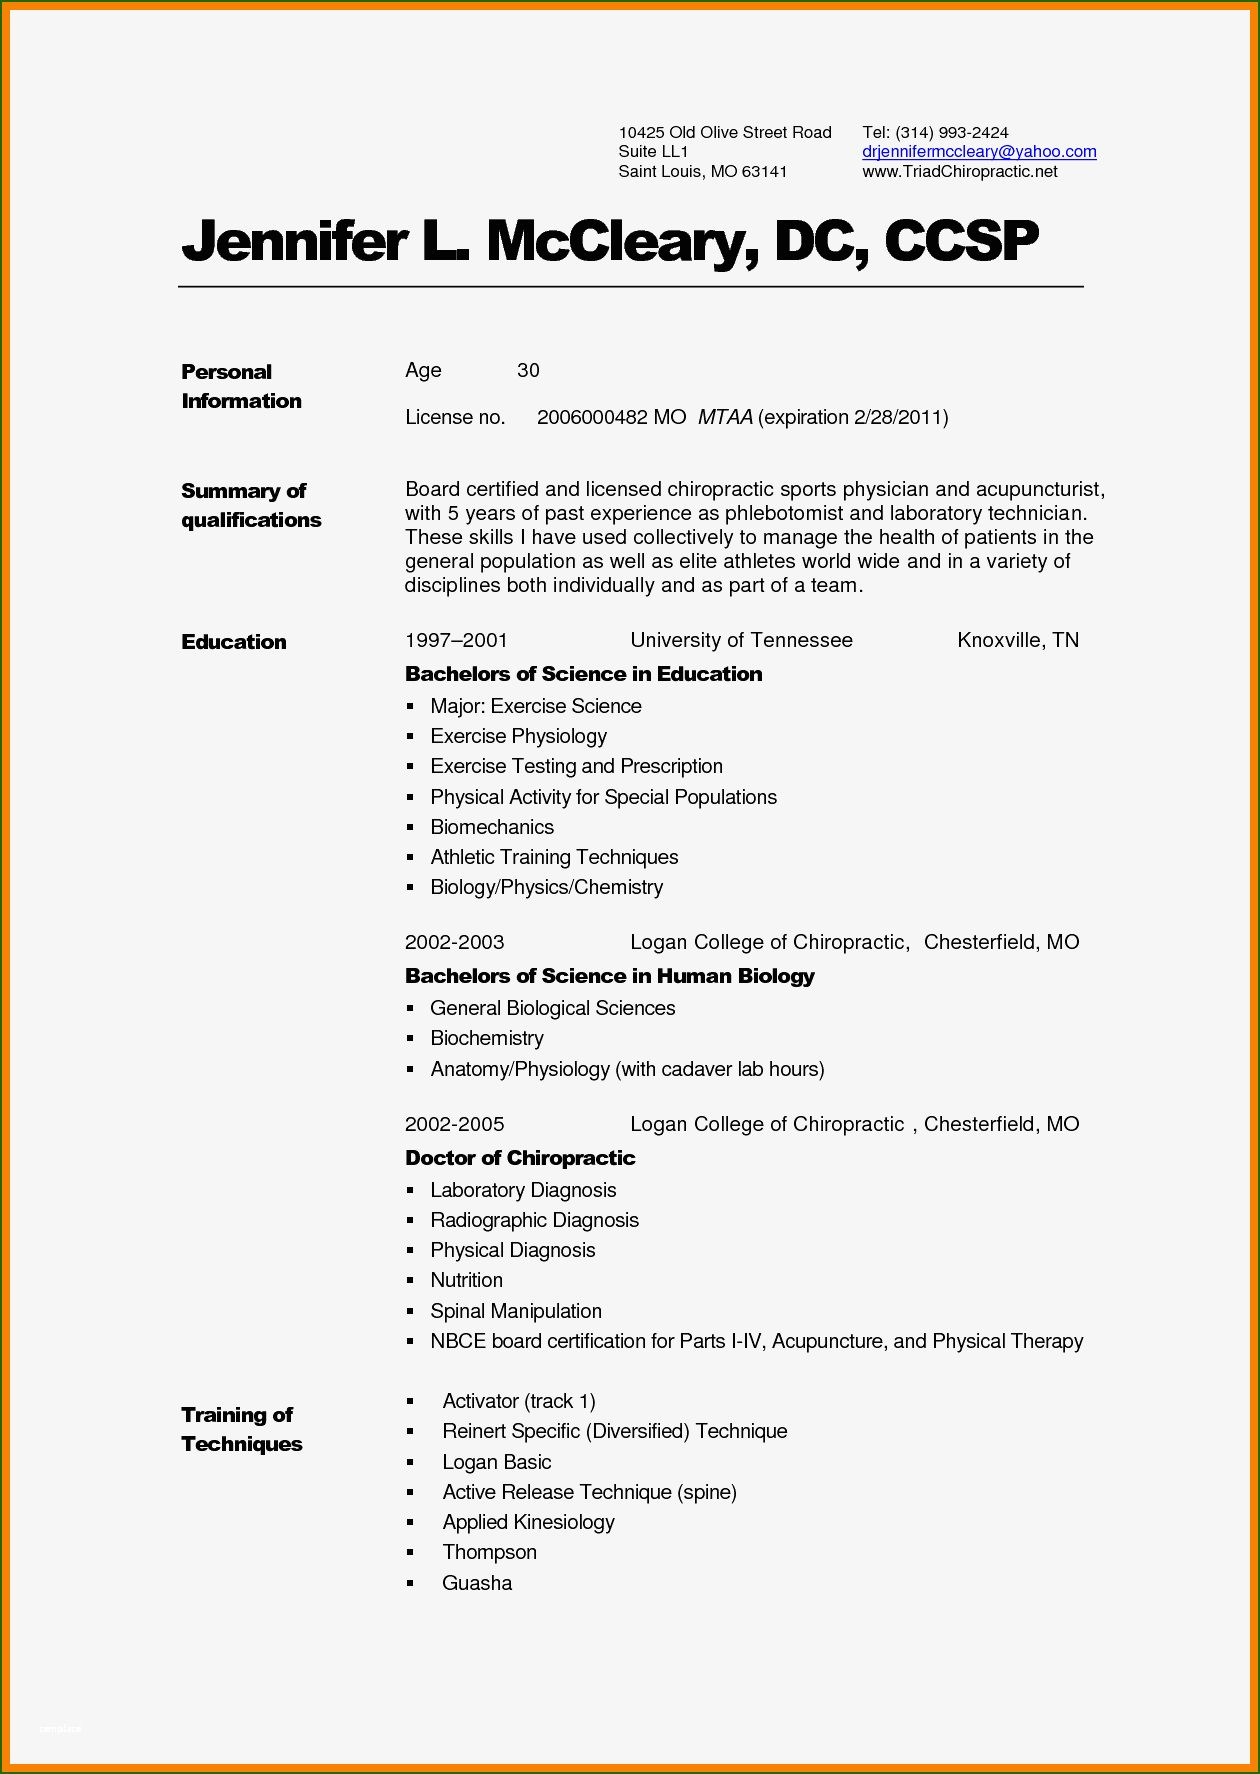 Admirable Physician Cv Template Word You'll Want to Copy